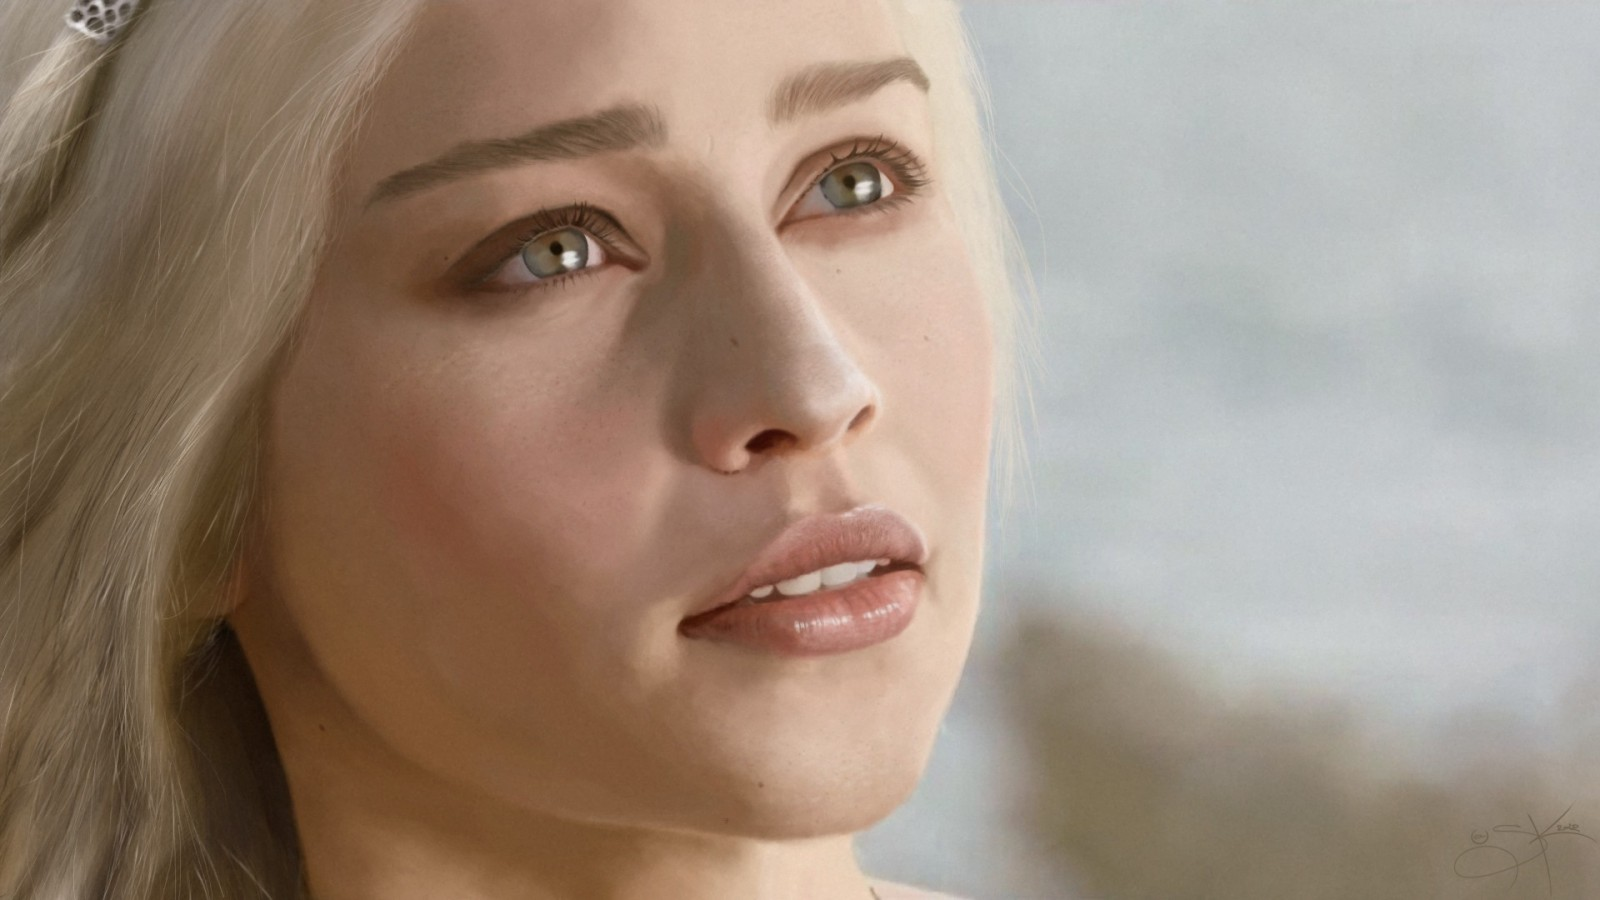 Game of thrones daenerys targaryen makeup tutorial beausic and now for the tutorial baditri Images